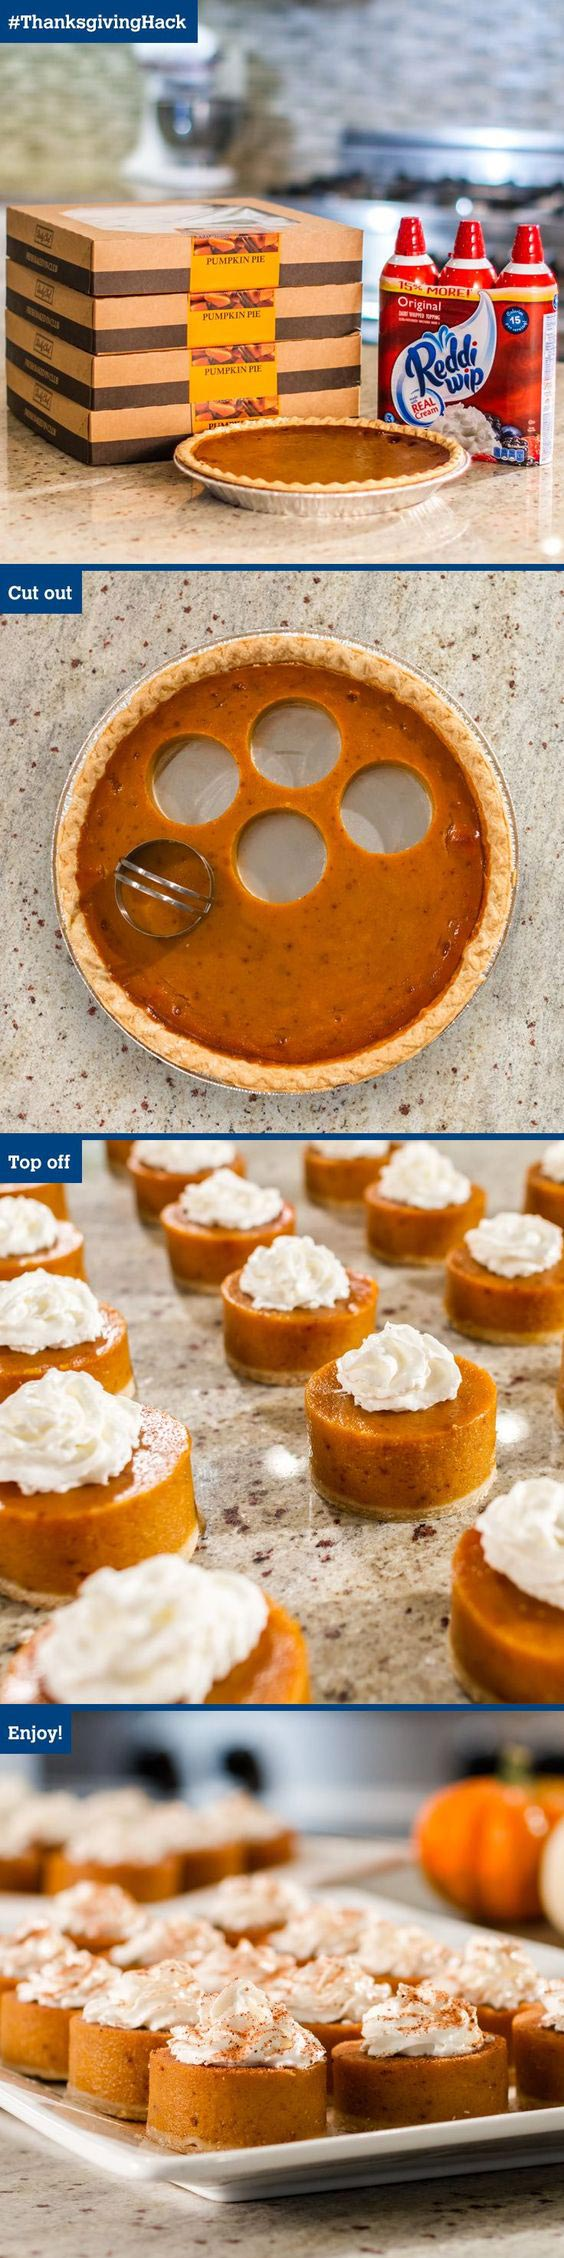 Pumpkin Pie Bites // Small Sweets for a Dessert Reception - weddingfor1000.com